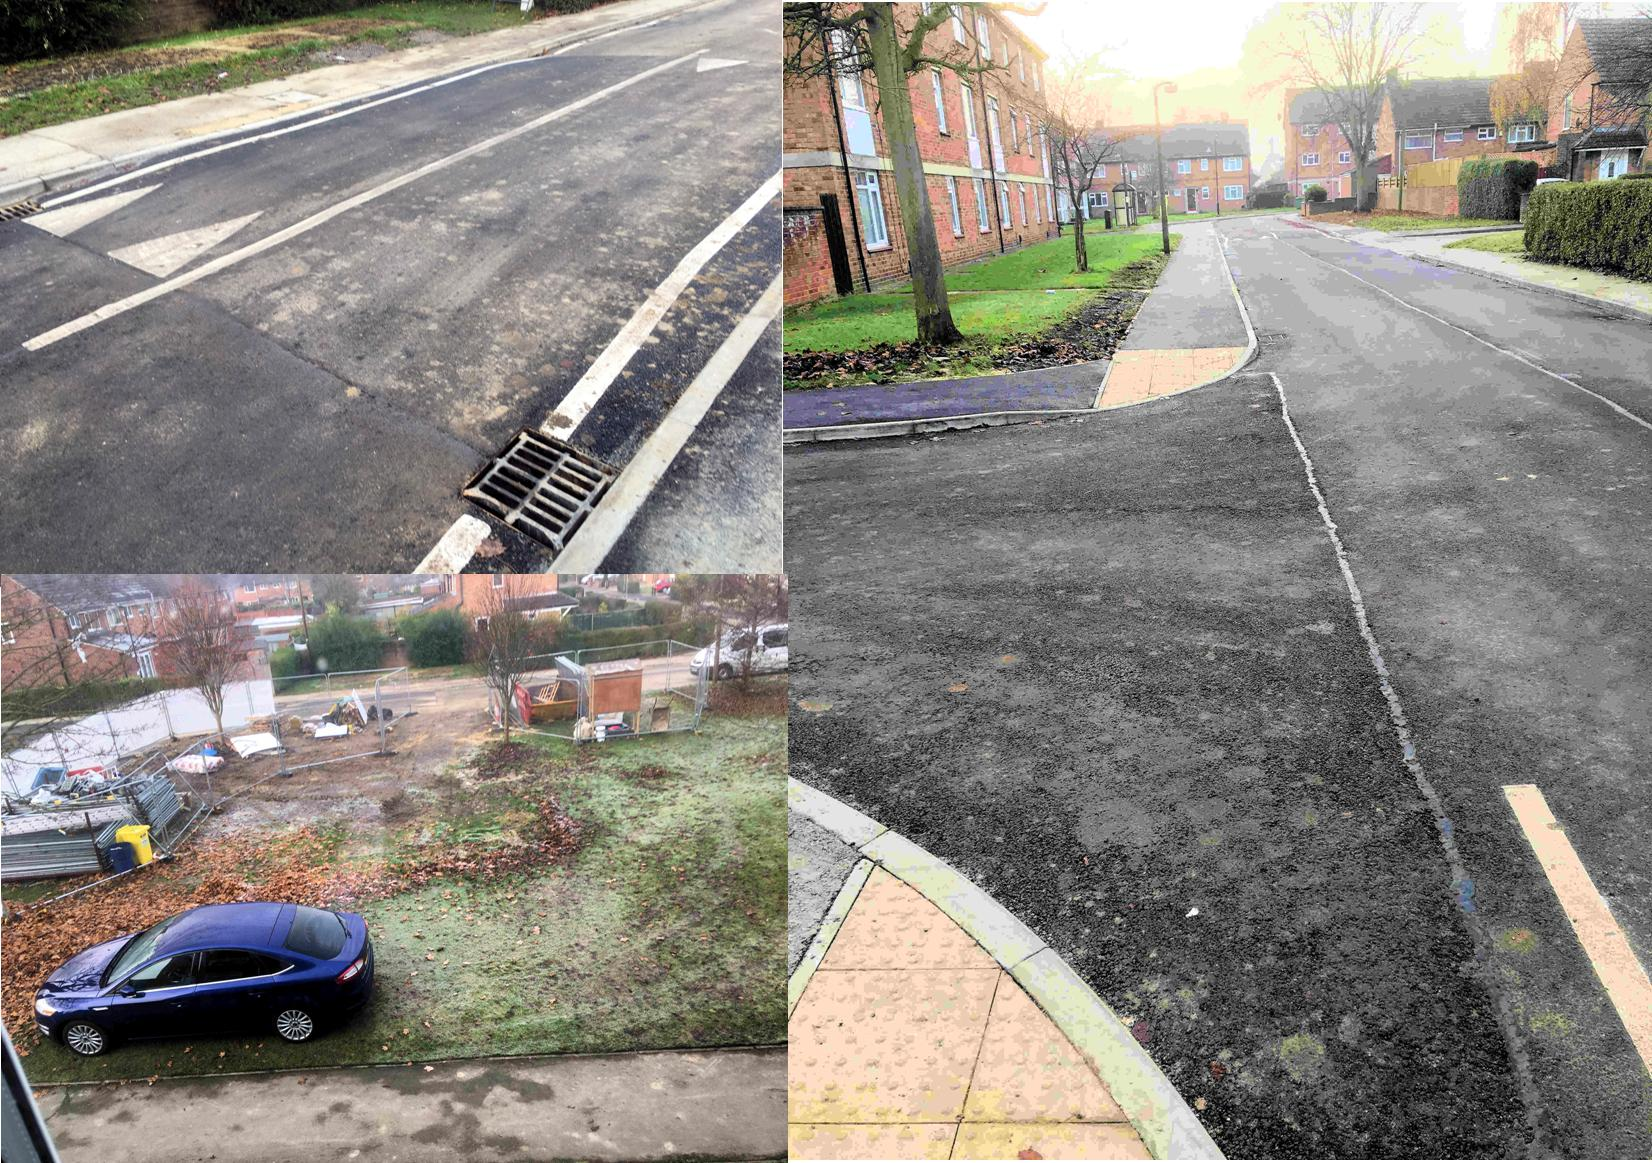 90% of Hob Stones residents had moved int their new homes on Windsor Garth. Some road repairs had been completed although work on the amenity area was outstanding